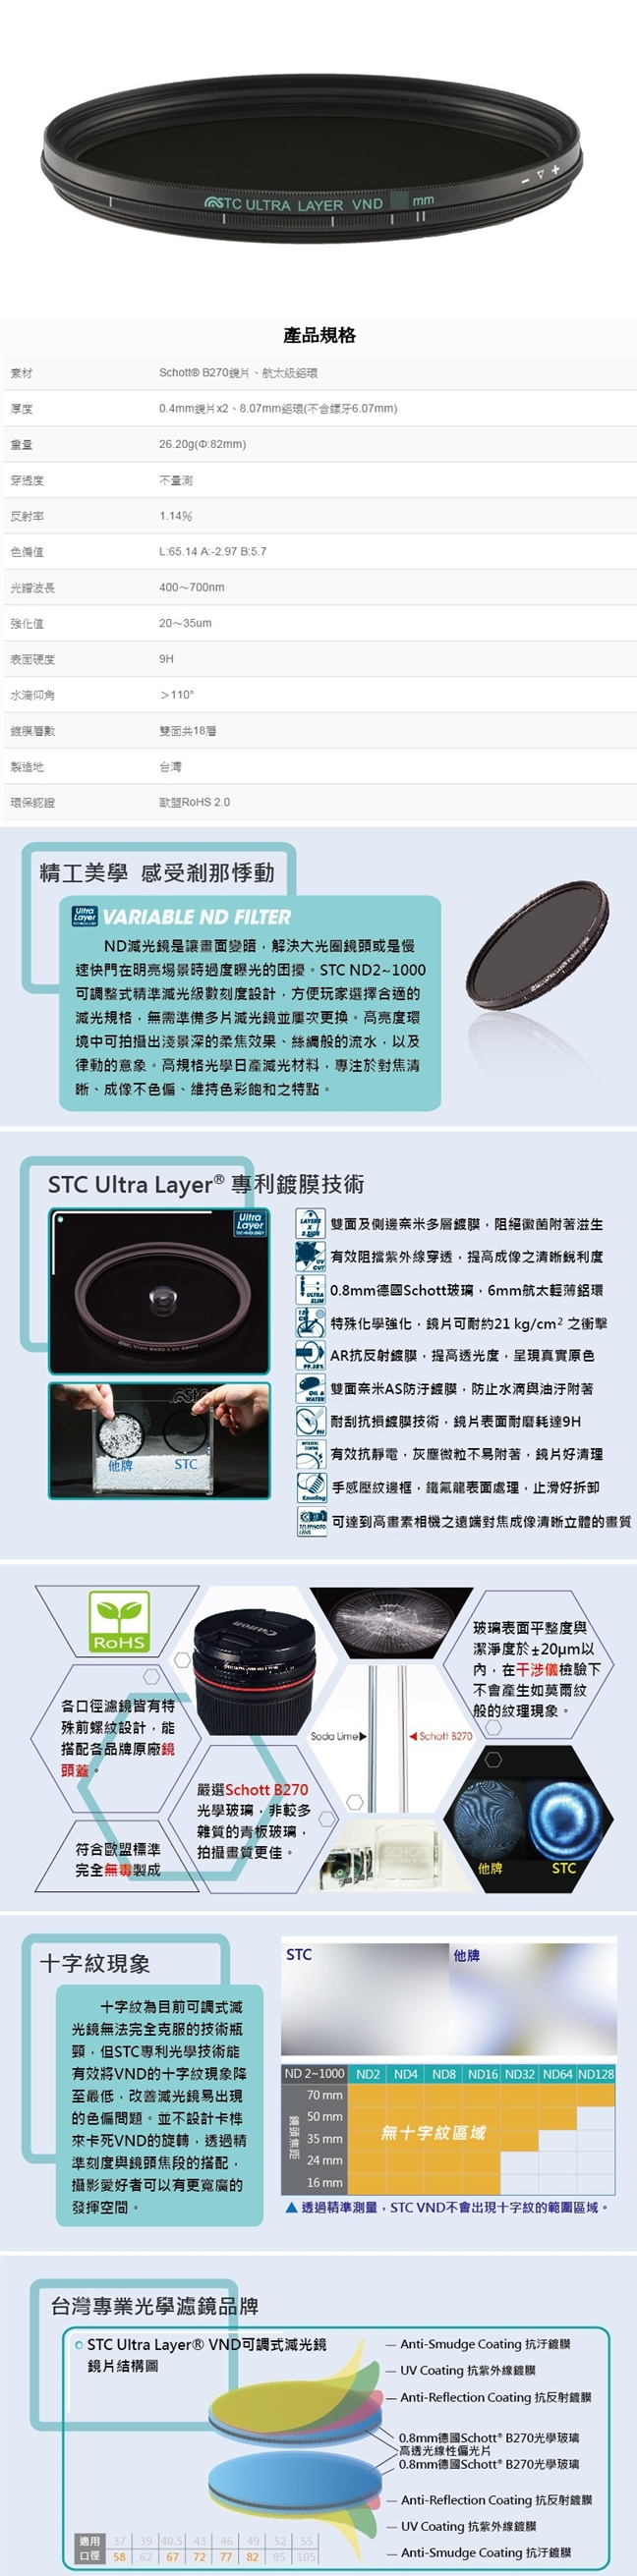 台灣STC|減光鏡VND可調式減光鏡ND2-1024 58mm ( VND 58mm )